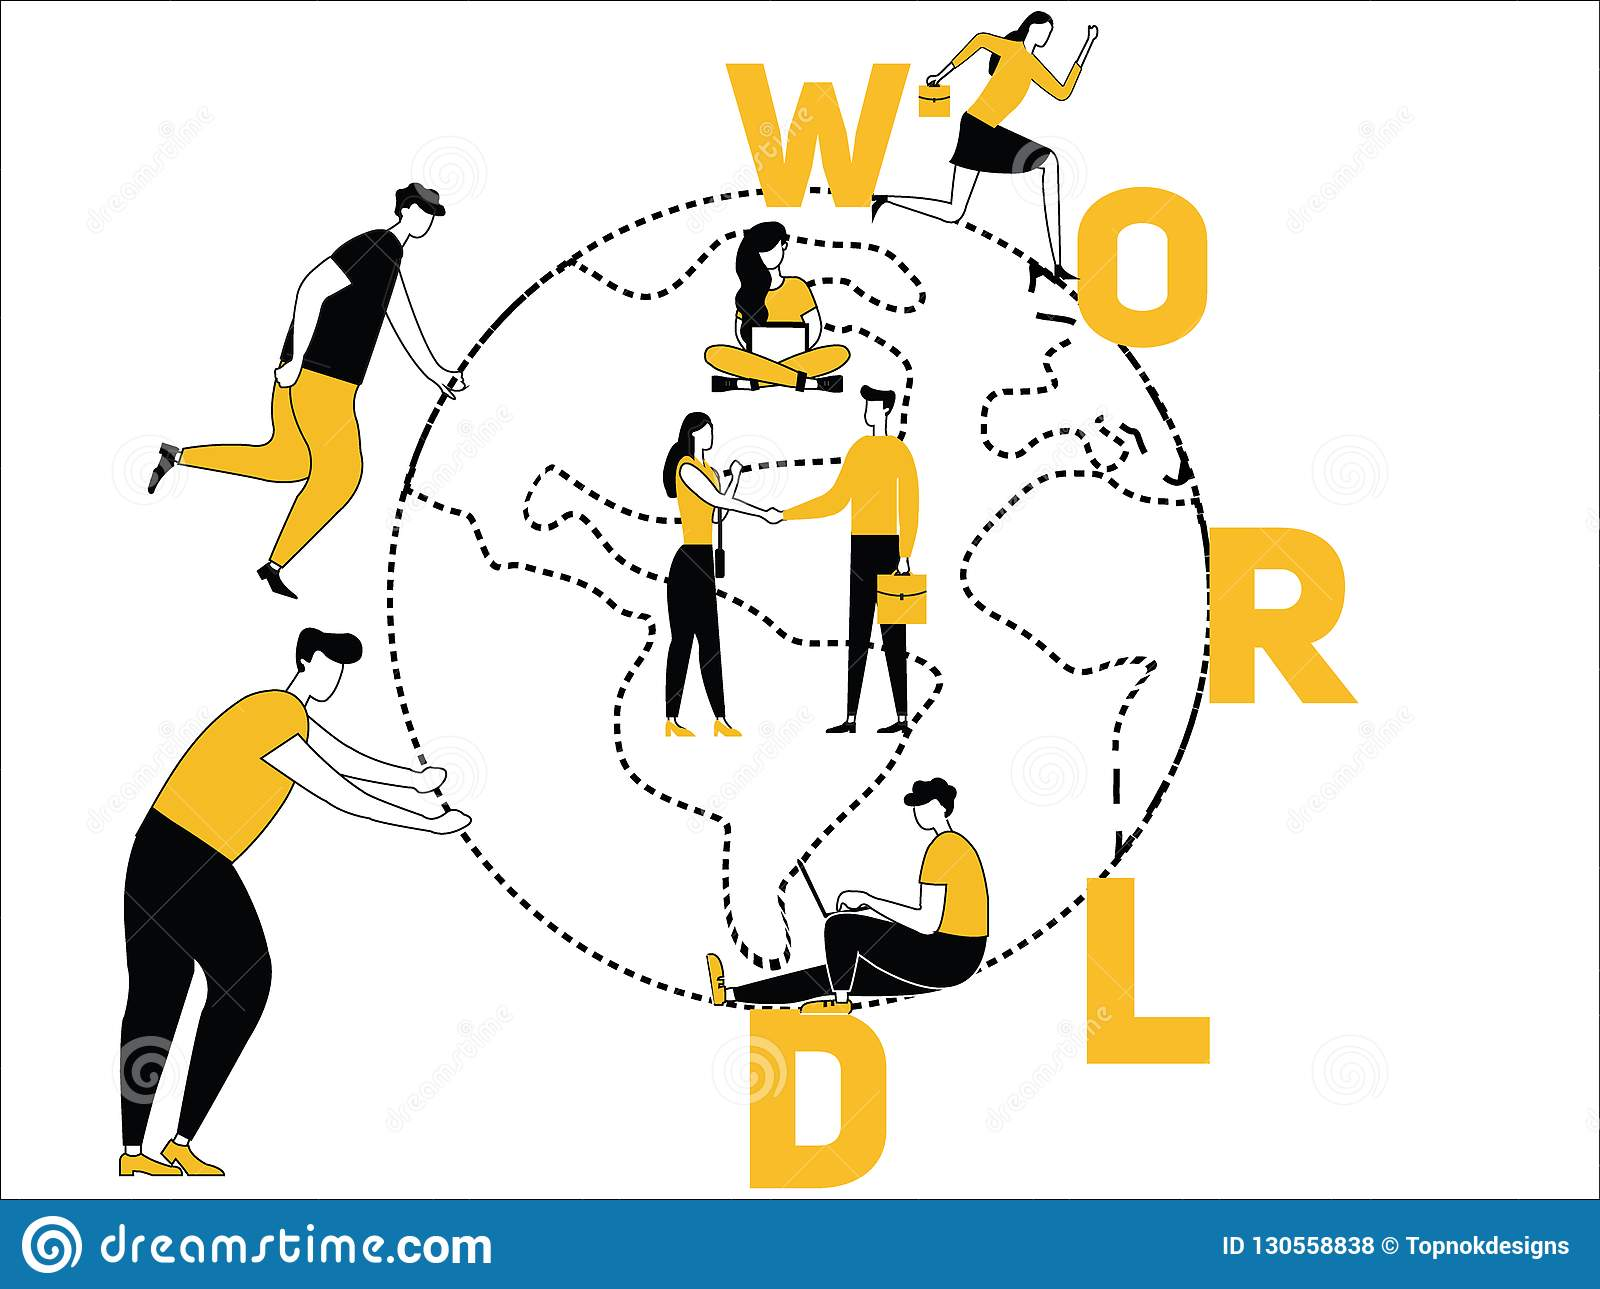 Creative Word concept World and People doing things